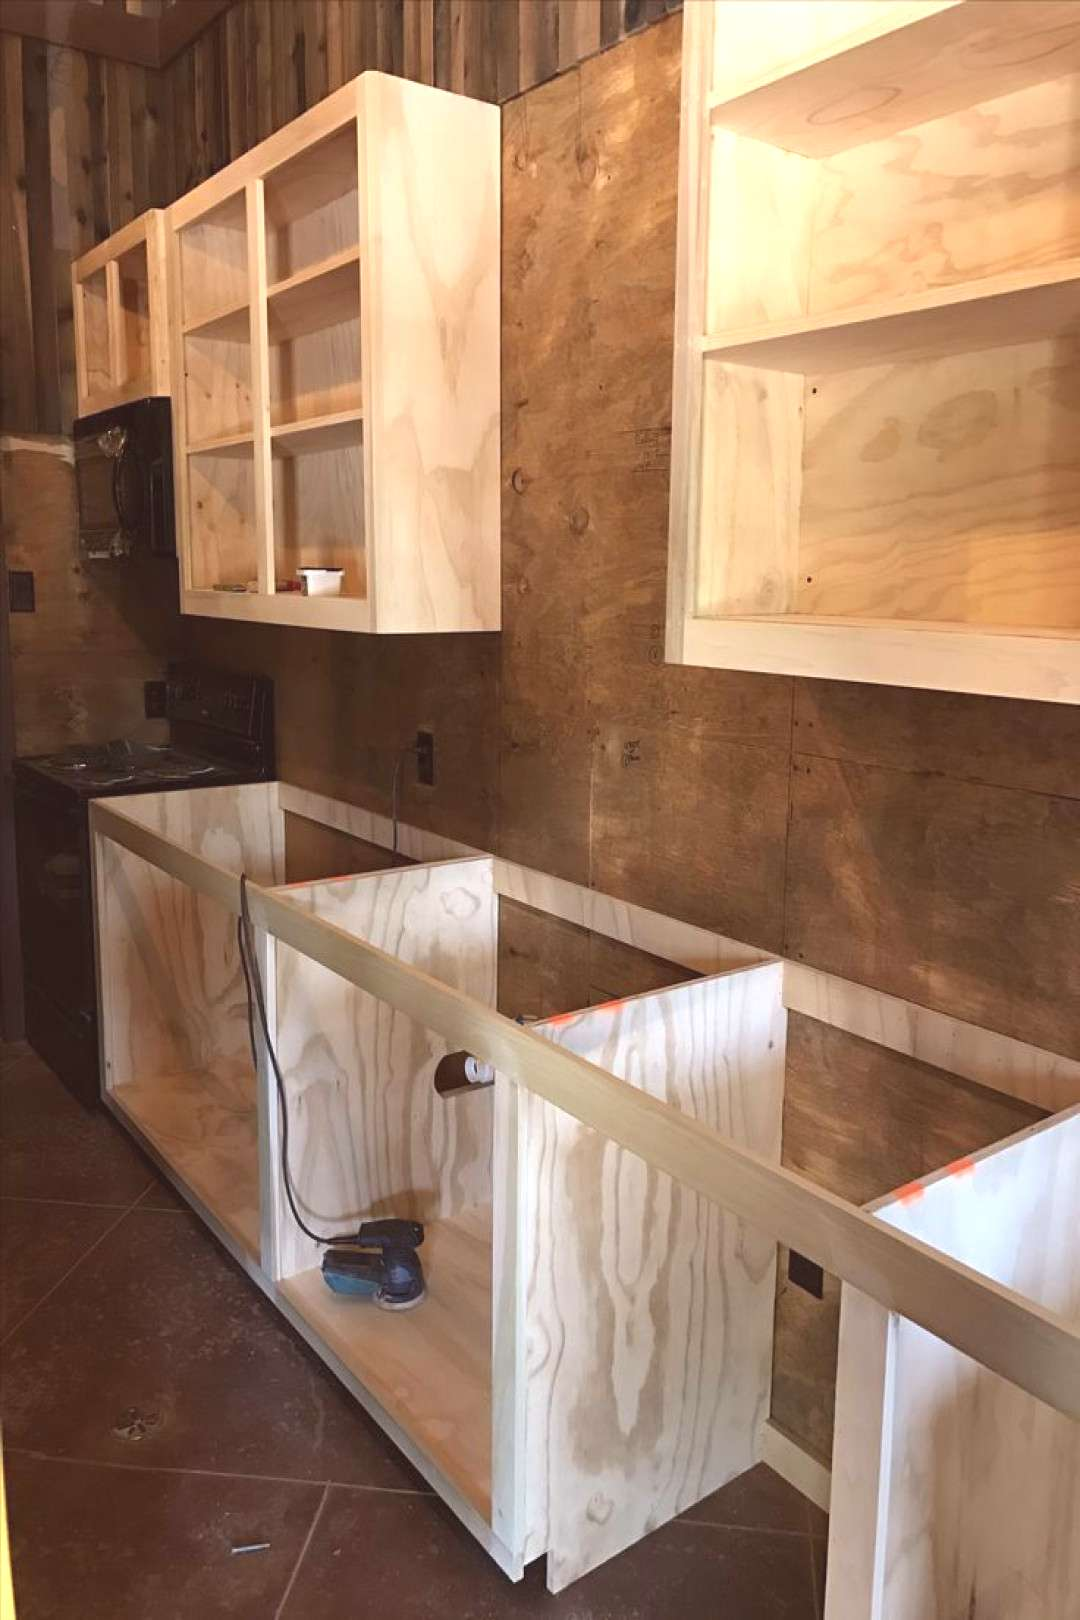 Plywood Cabinets - - Woodworking Diy - Plywood Cabinets Plywood Cabinets The post Plywood Cabinets